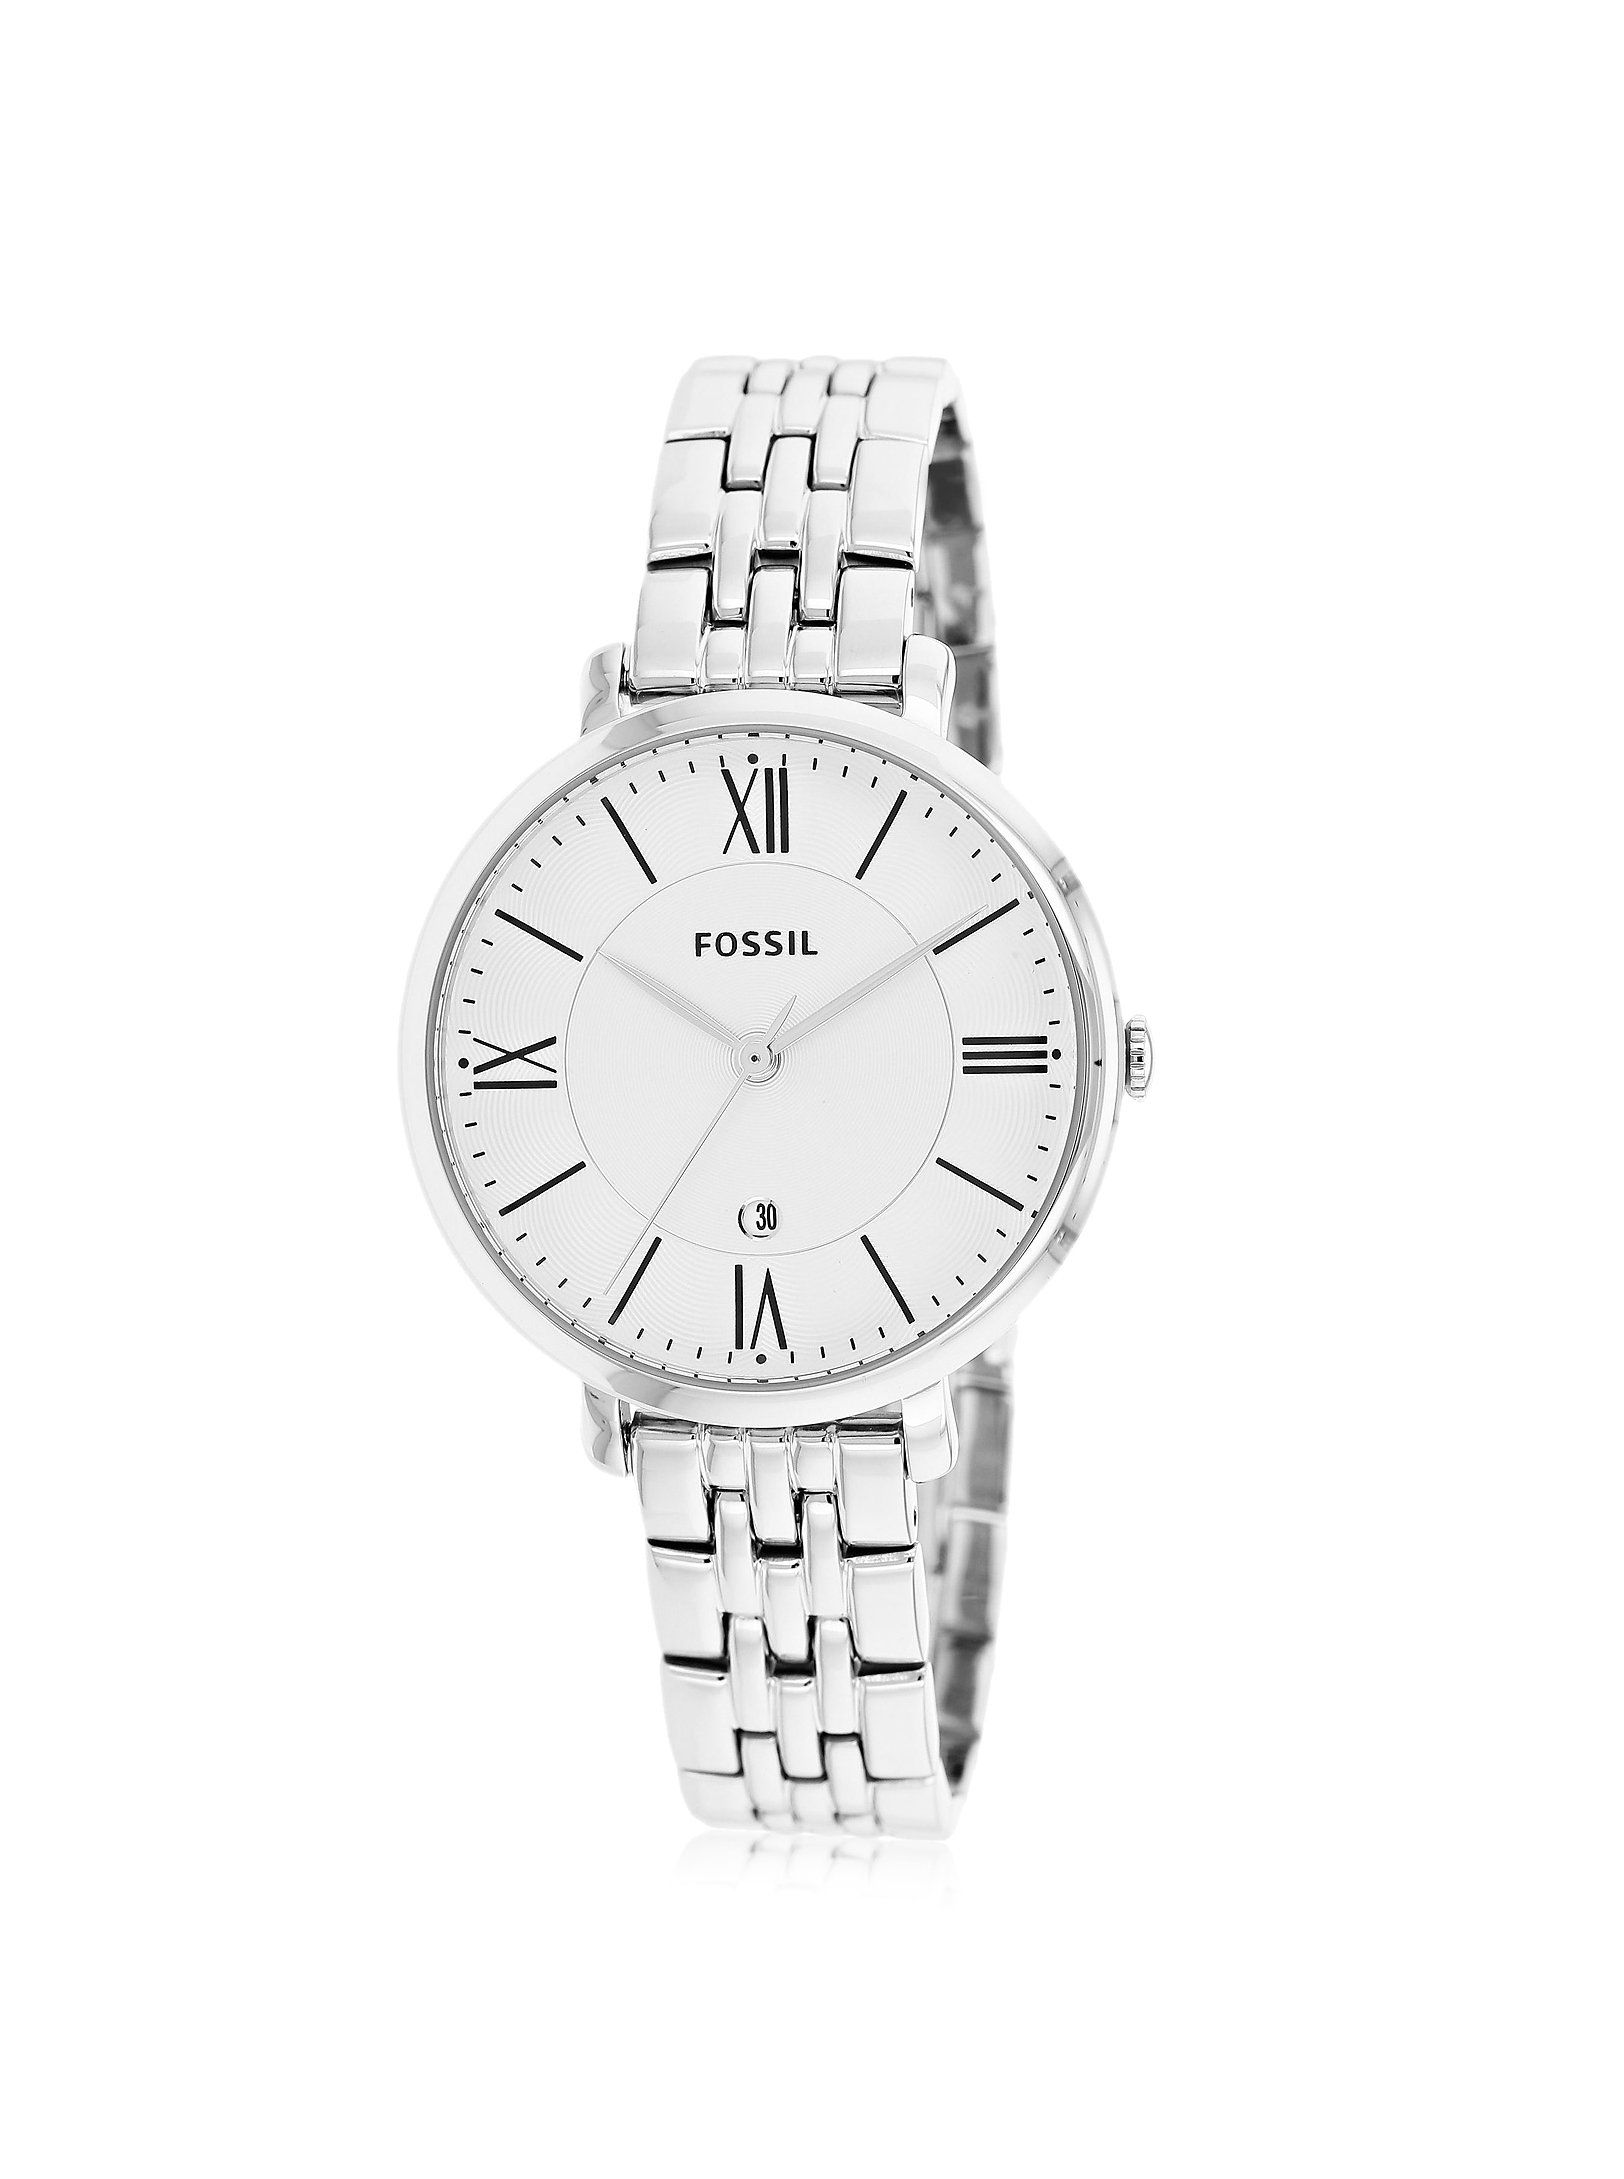 59e300a49d5c Fossil Women's ES3433 Jacqueline Three-Hand Stainless Steel Watch - Silver- Tone at MYHABIT